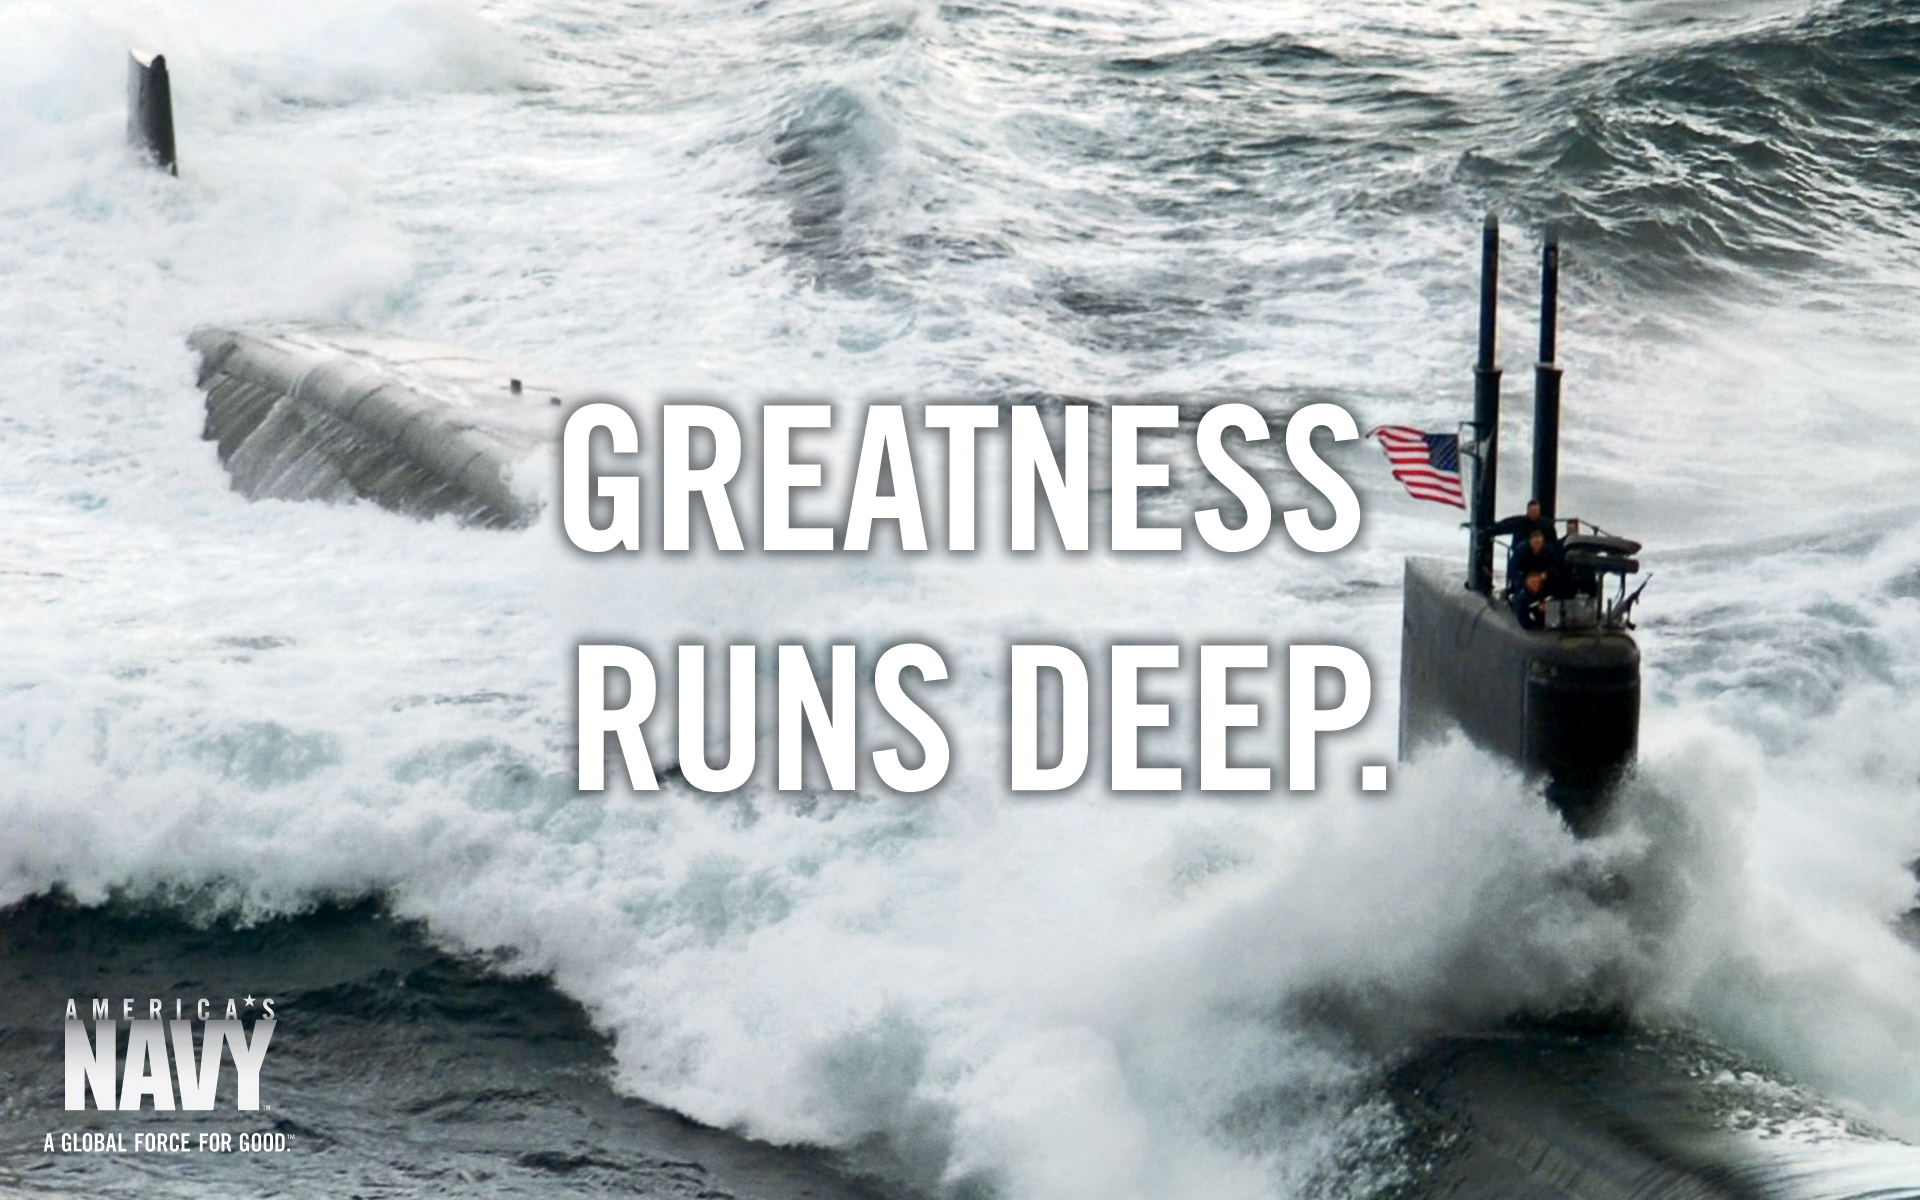 ... military-boats-united-states-navy-greatness-runs-deep_1920x1200_93758 navy_logo_need_something_cool_for_log_in_desktop_1600x1200_hd-wallpaper-692846 ...